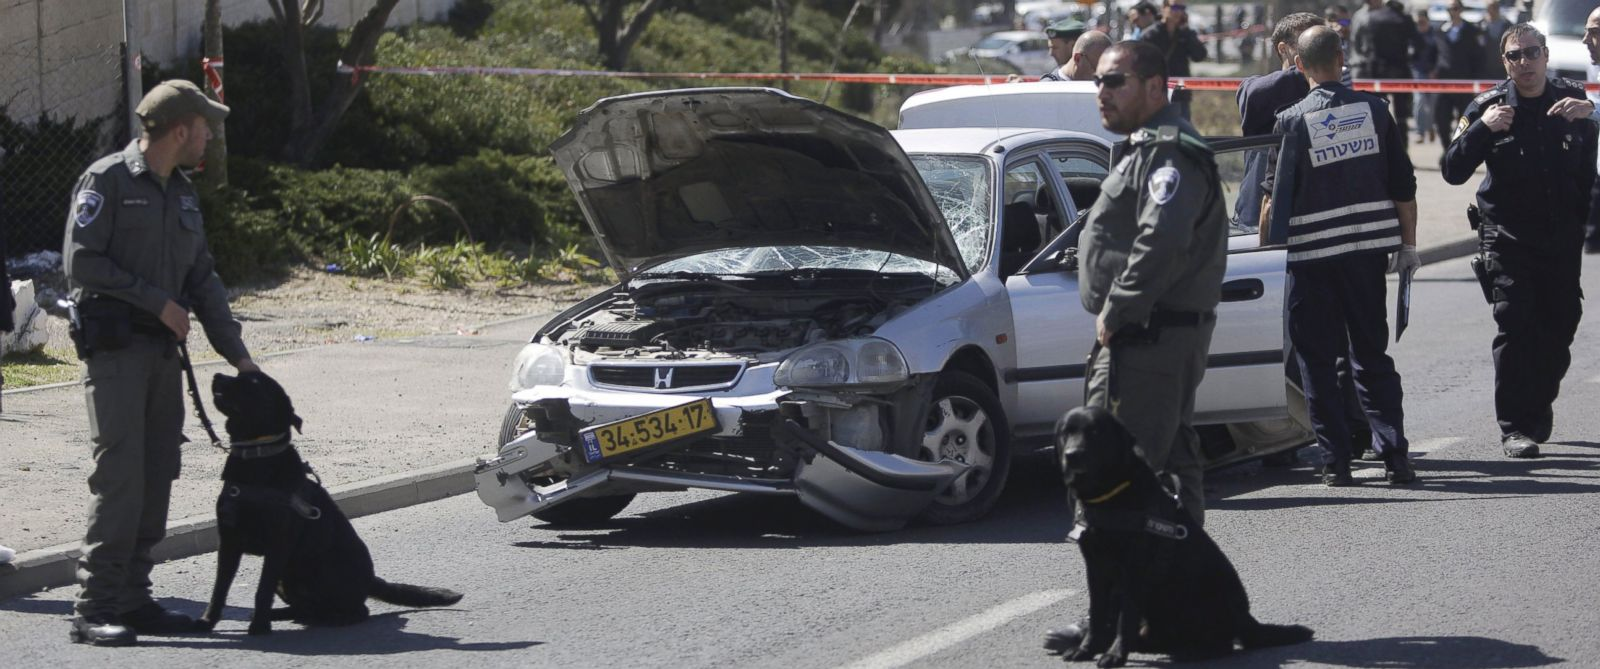 PHOTO: Israeli police stand next to a car at the scene of an attack in Jerusalem, March 6, 2015.